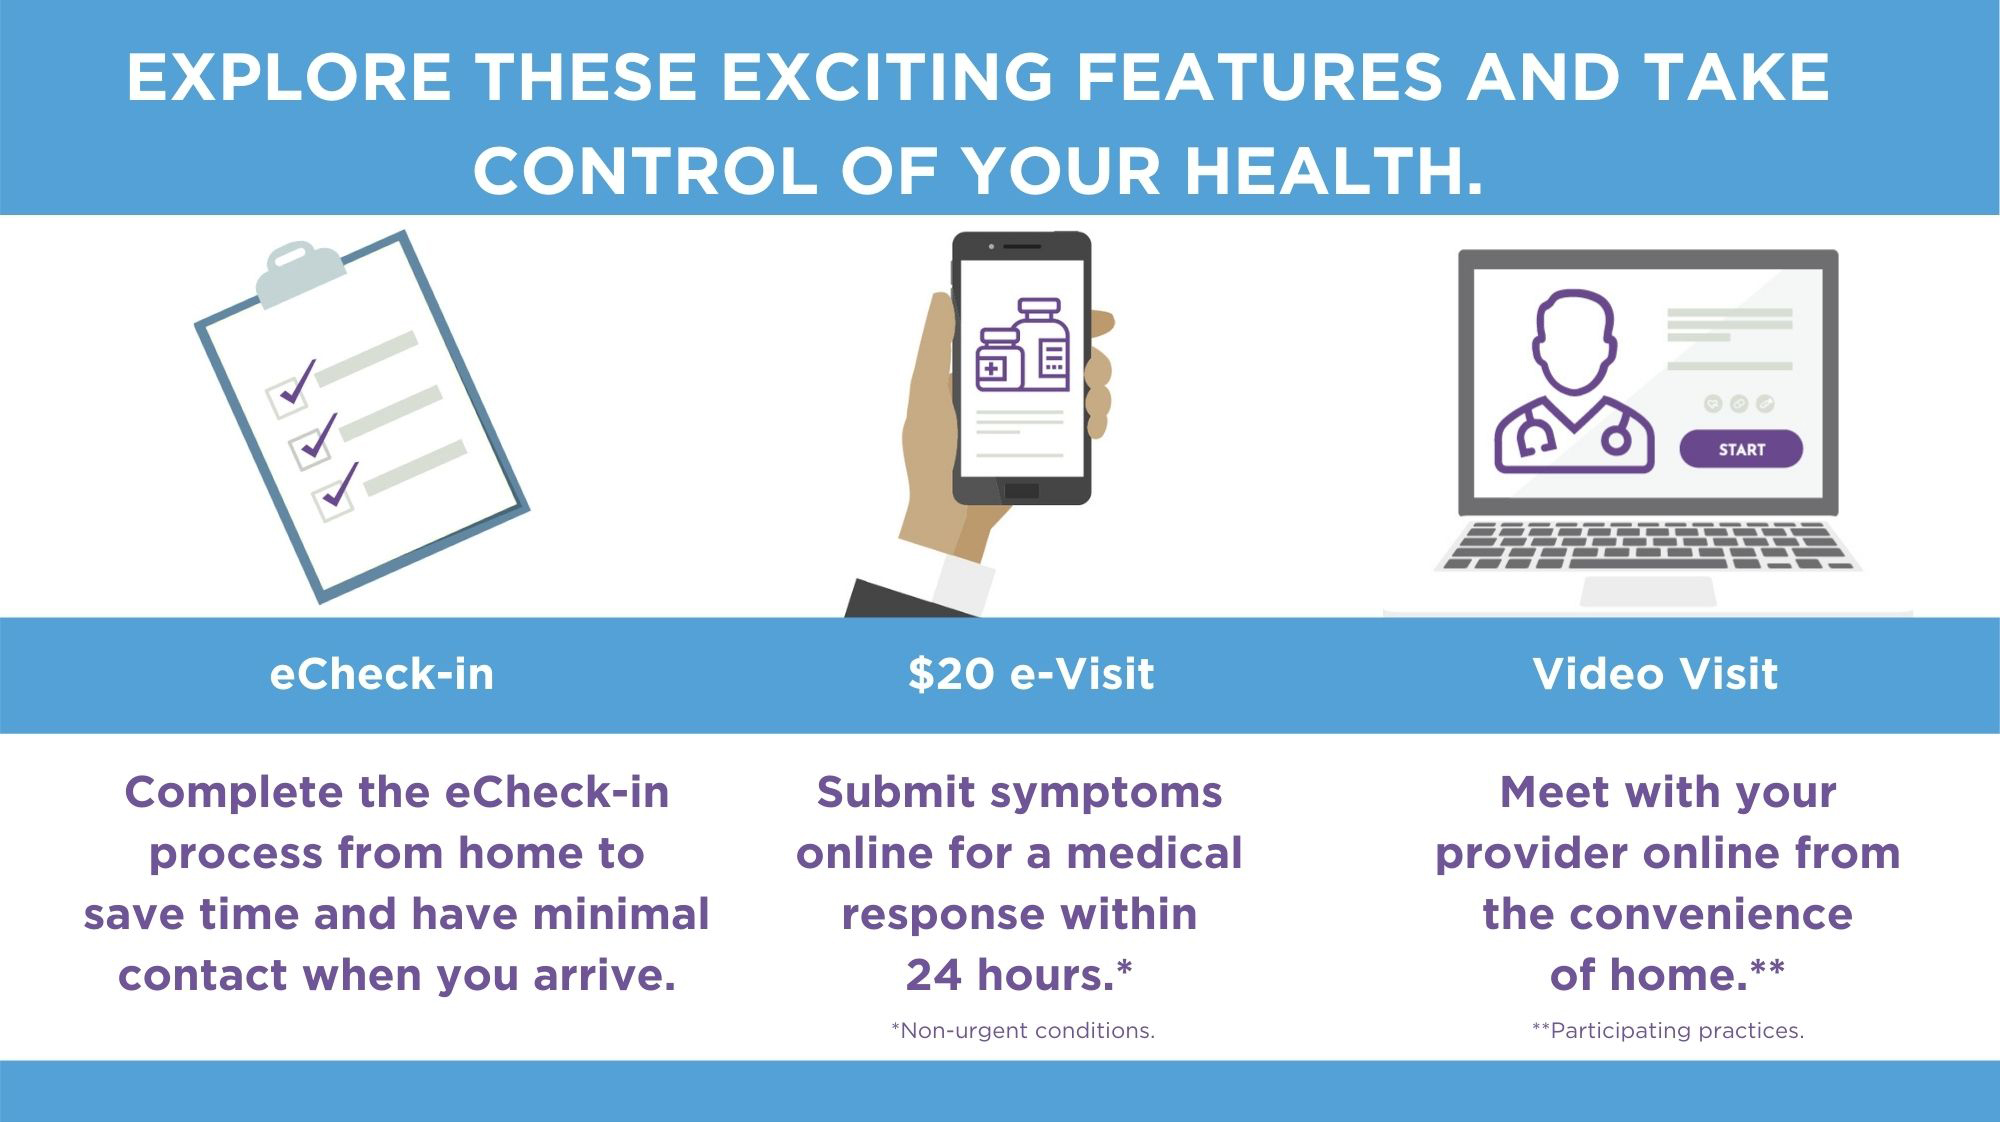 Explore these exciting features and take control of your health.  eCheck-in – Complete the eCheck-in process from home to save time and have minimal contact when you arrive. $20 e-Visit – Submit symptoms online for a medical response within 24 hours* Video Visit – Meet with your provider online from the convenience of home** Manage the accounts of loved ones with proxy access for your kids and family members Need help? Call 1-888-84-CHART or email MyChart@srhs.com  *Non-urgent conditions  **Participating practices